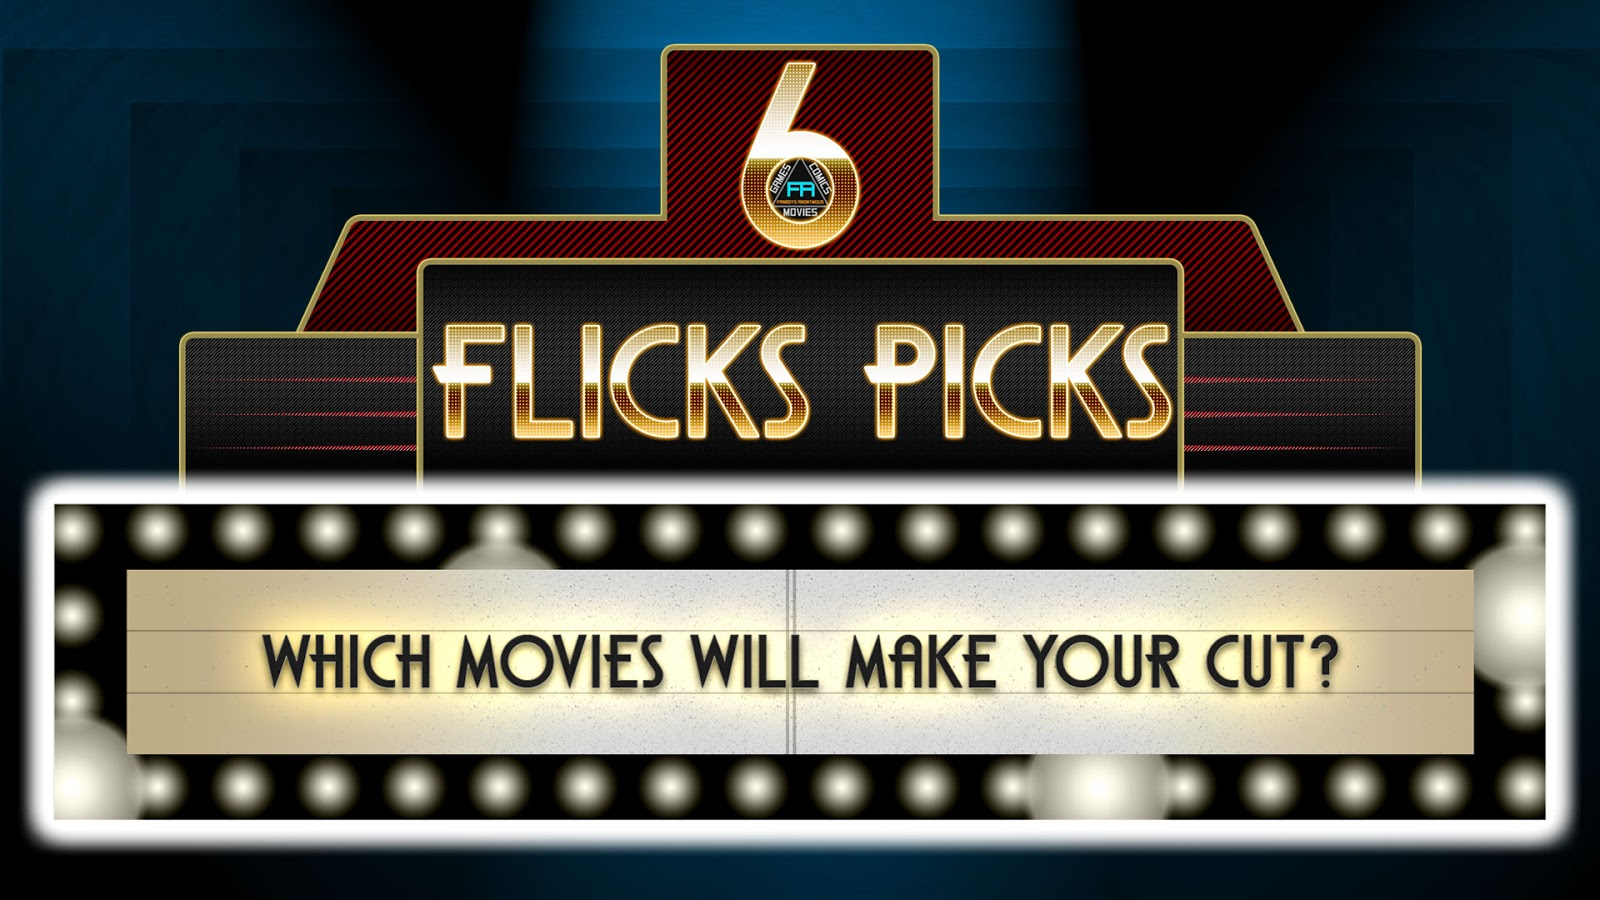 What movies are coming out March 2019 6 Flicks Picks